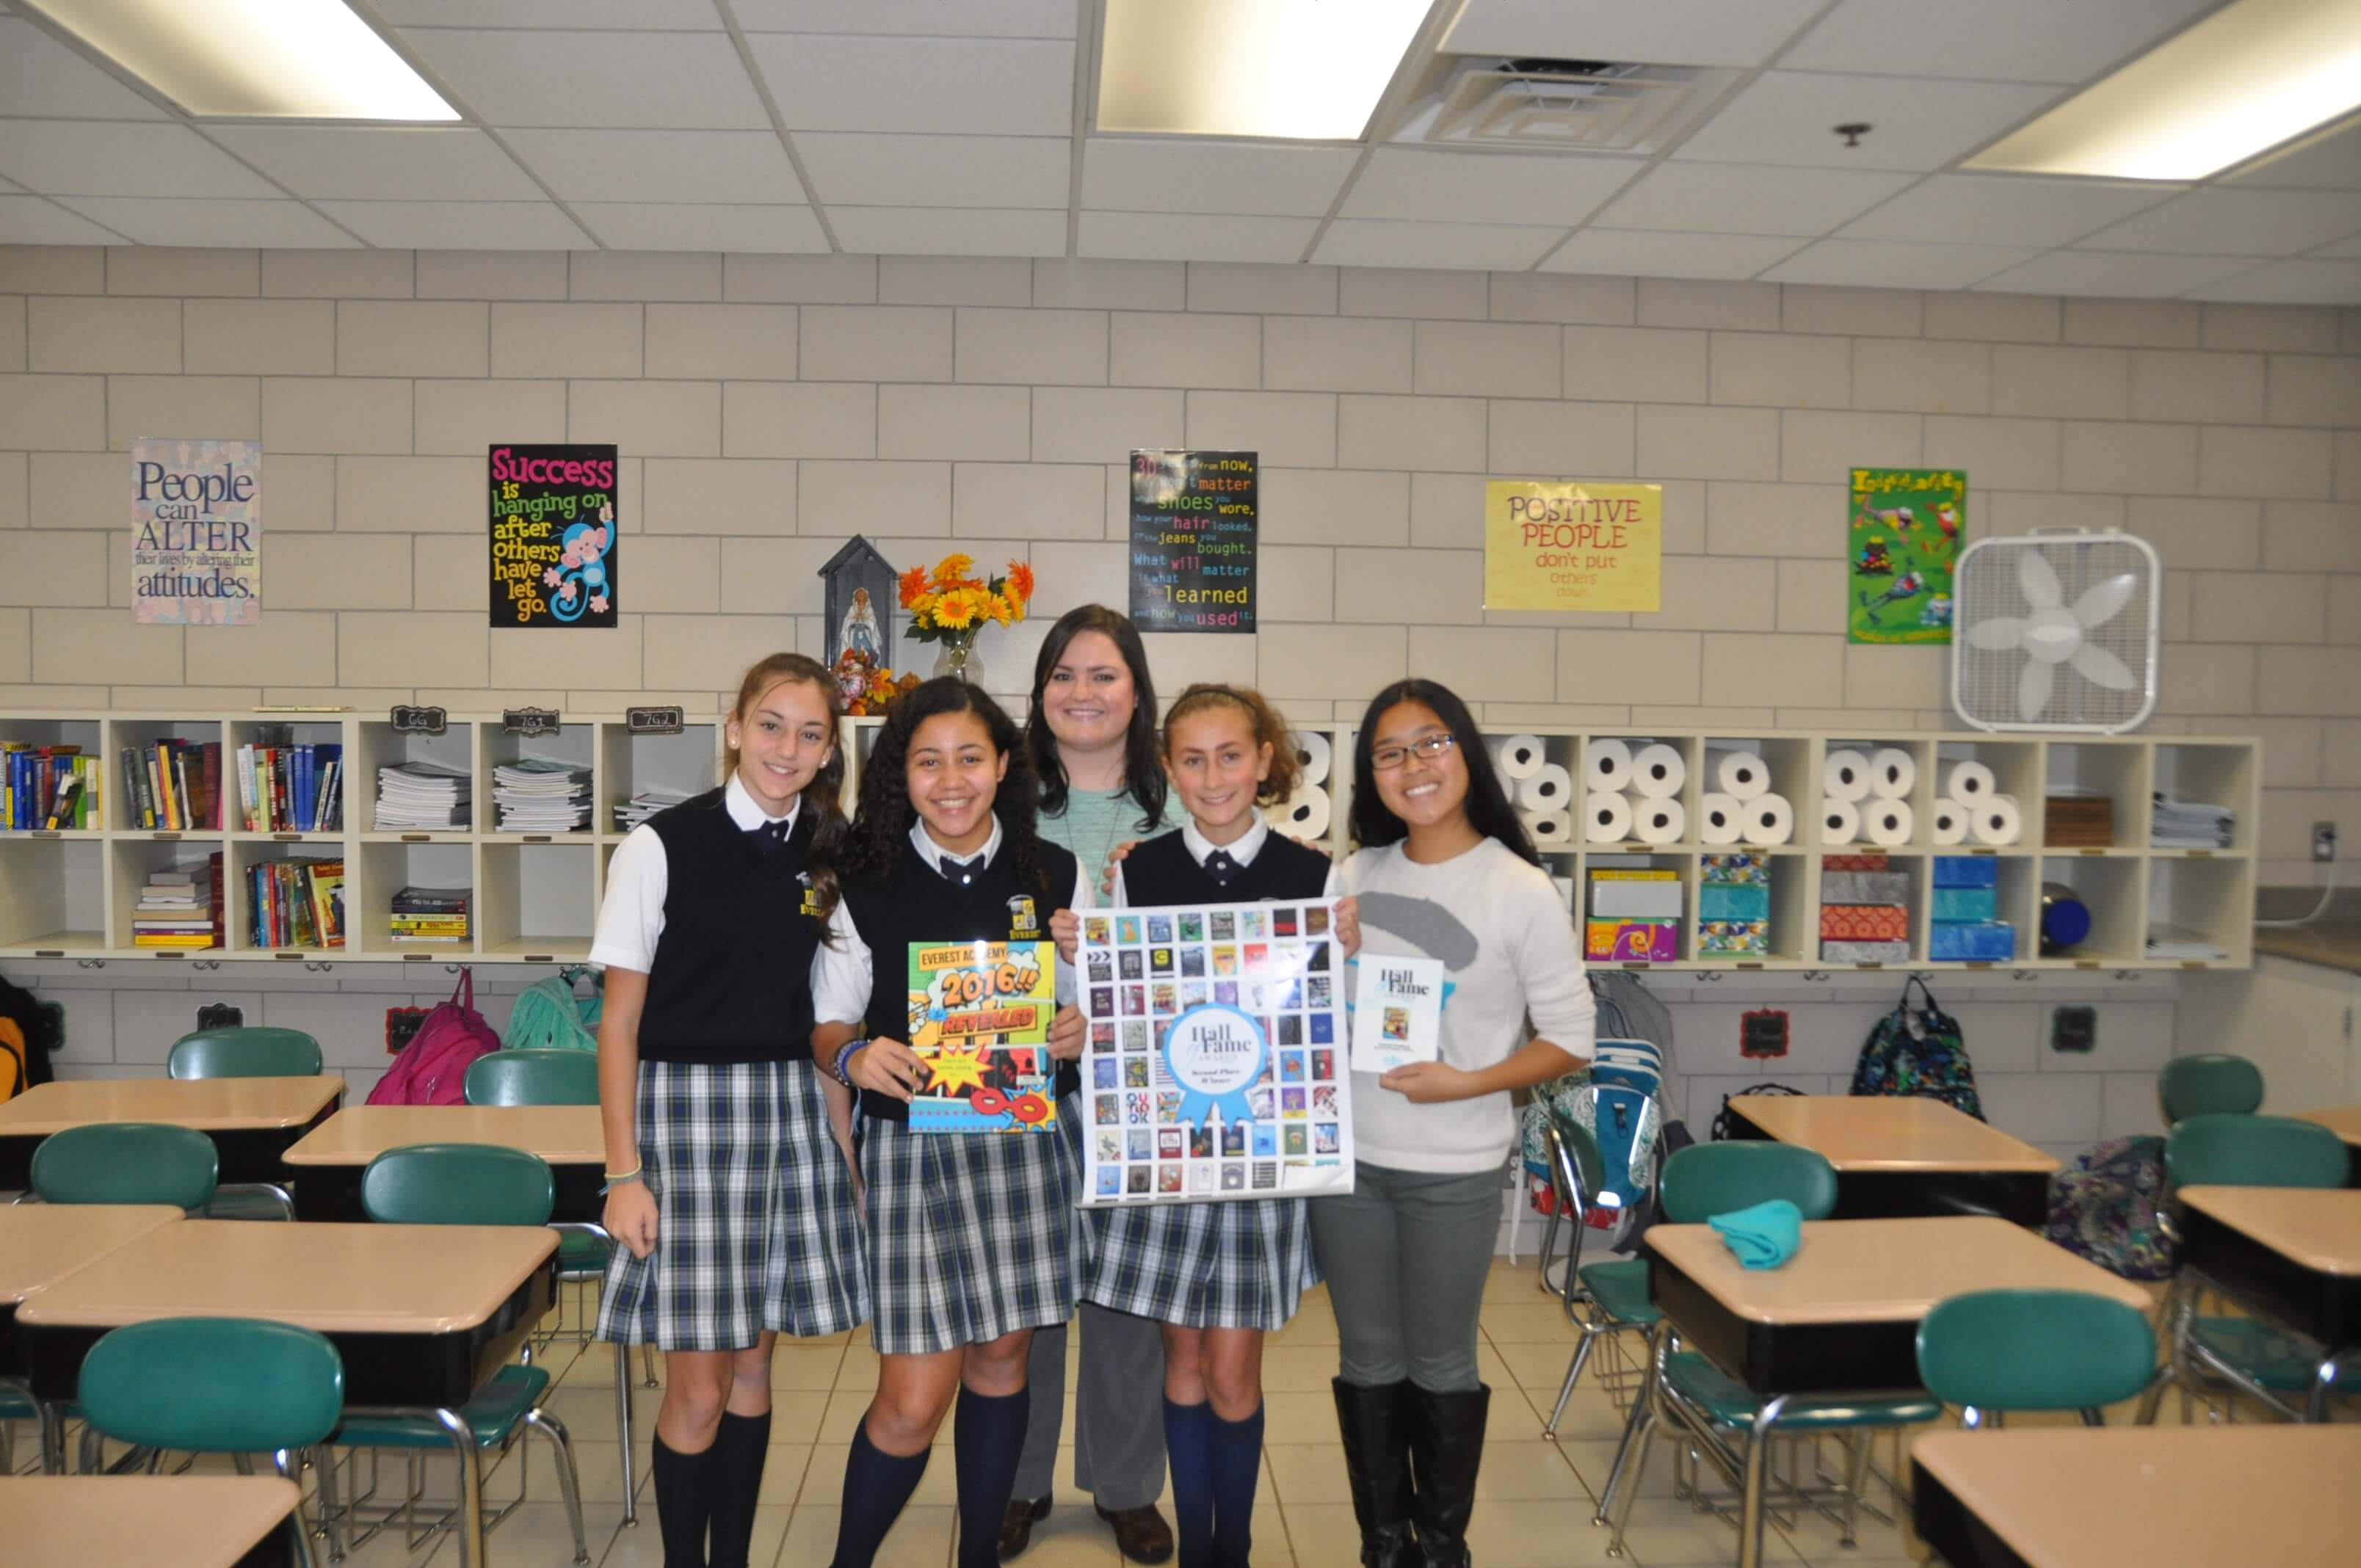 Mrs. DiFonzo (left) with yearbook staff members  Angela Tibudan, Molly Burgess, Andrea Gonzalvo and Lucia Dominguez, accepting the award.